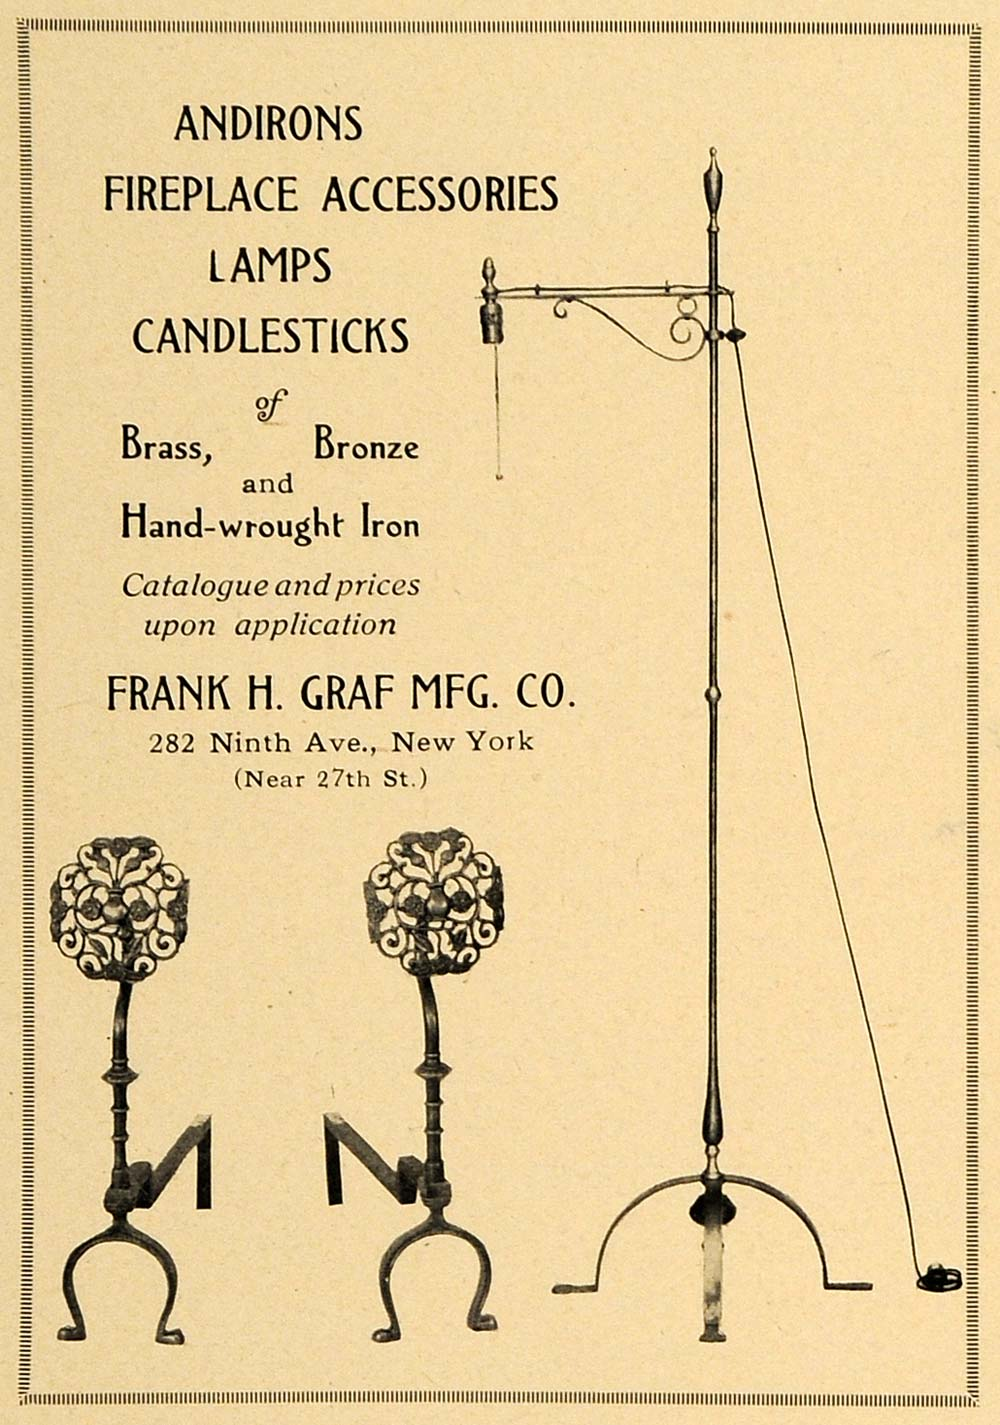 1921 Ad Frank H Graf Mfg. Co. Andirons Lamps Decor - ORIGINAL ADVERTISING GF4